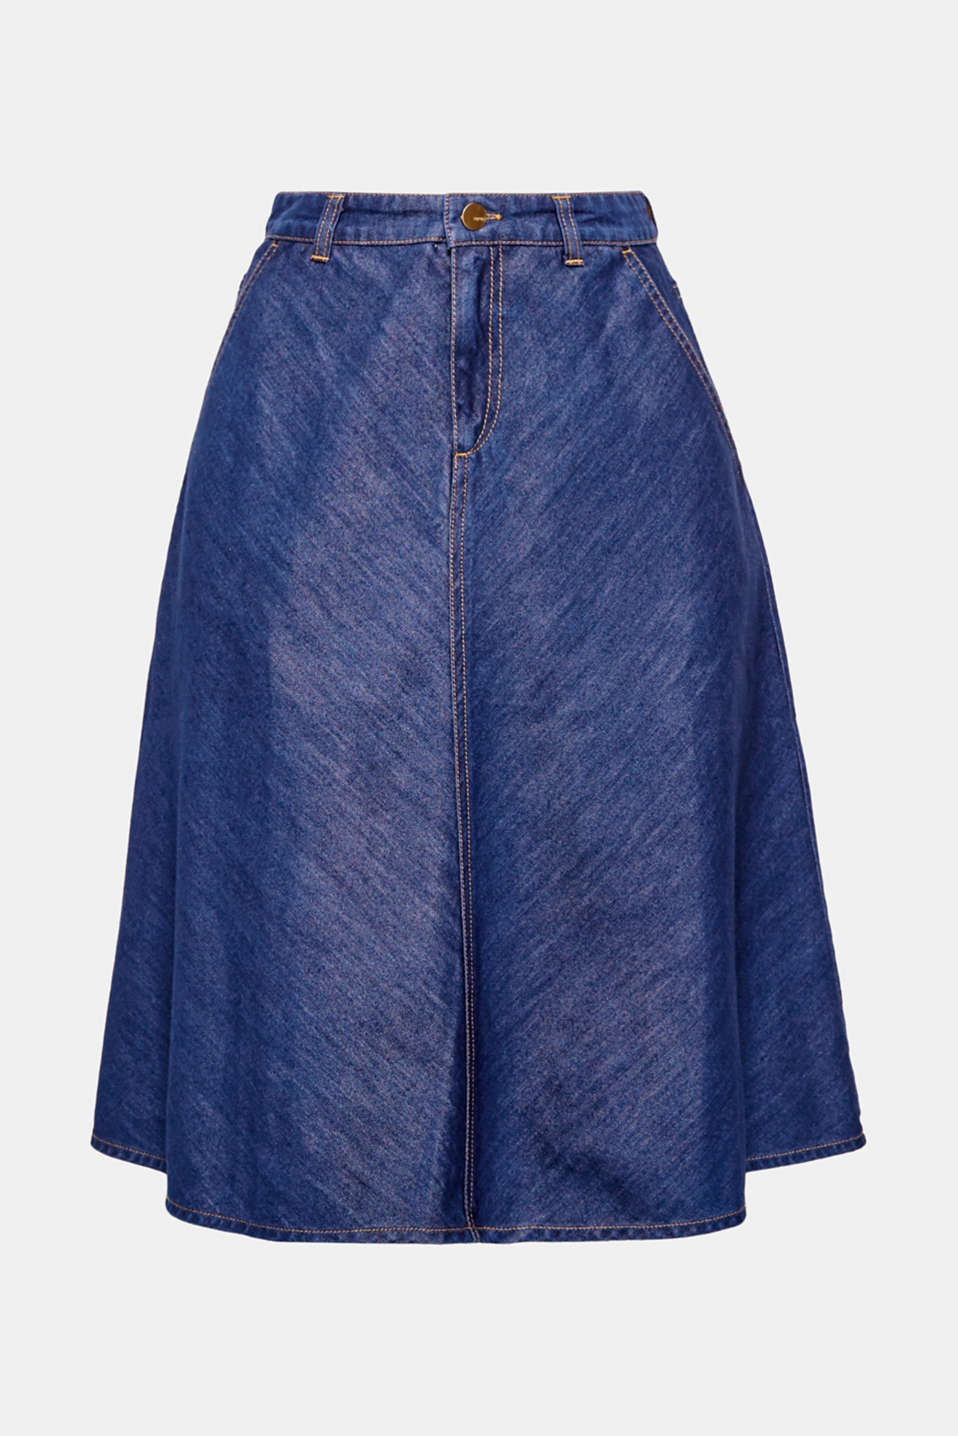 This flared denim skirt made of lightweight denim in a sleek look has a beautiful, swirly look.